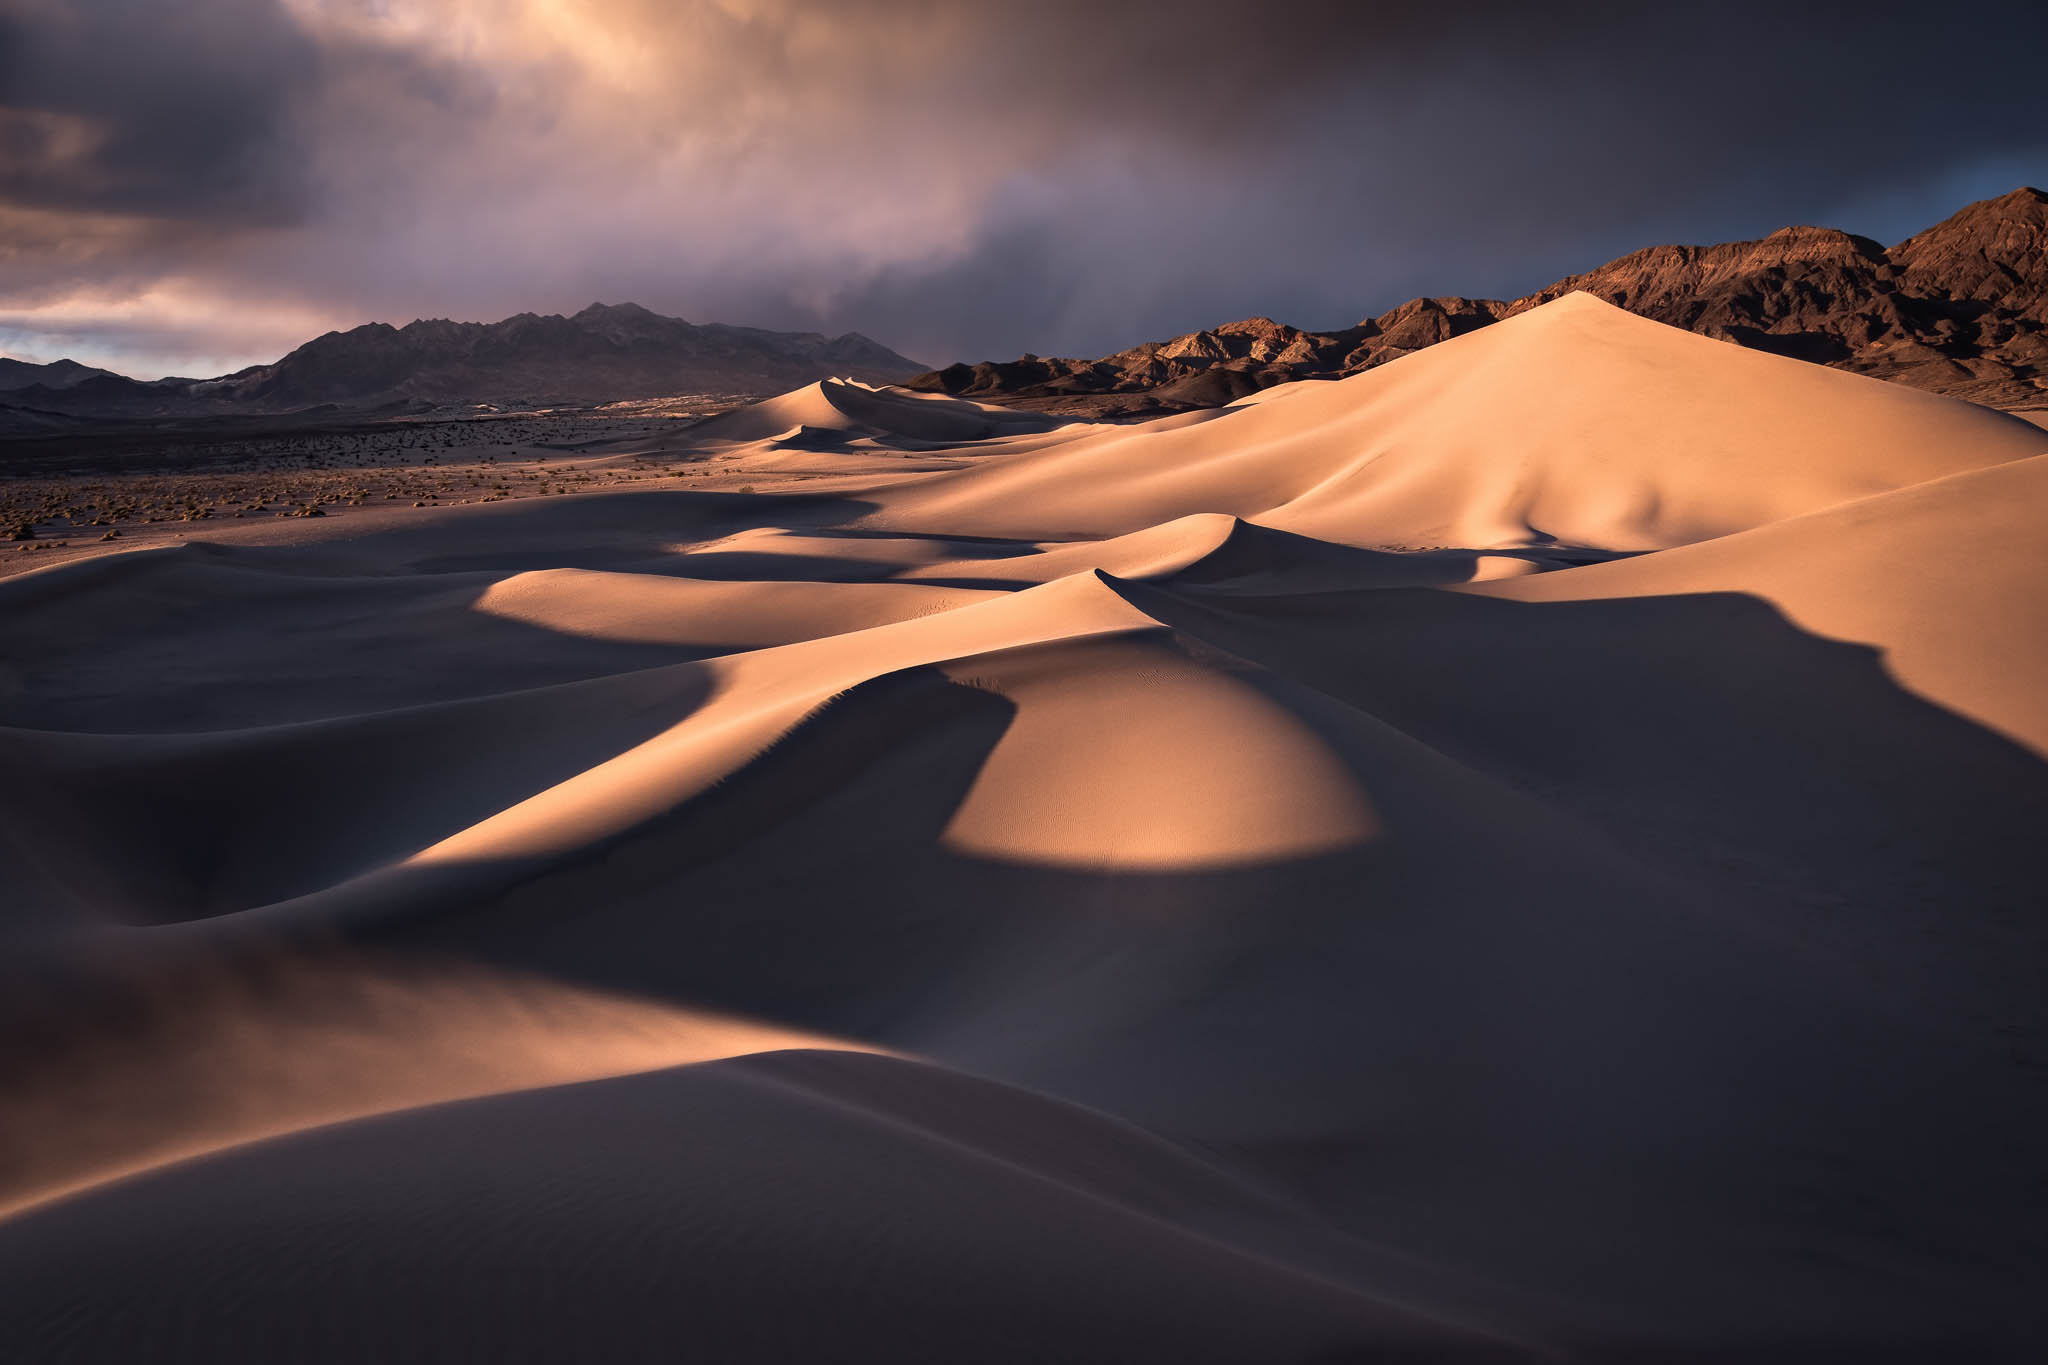 Time, blue, california, clouds, death valley national park, dramatic, ibex dunes, landscape orientation, mojave desert, sand...